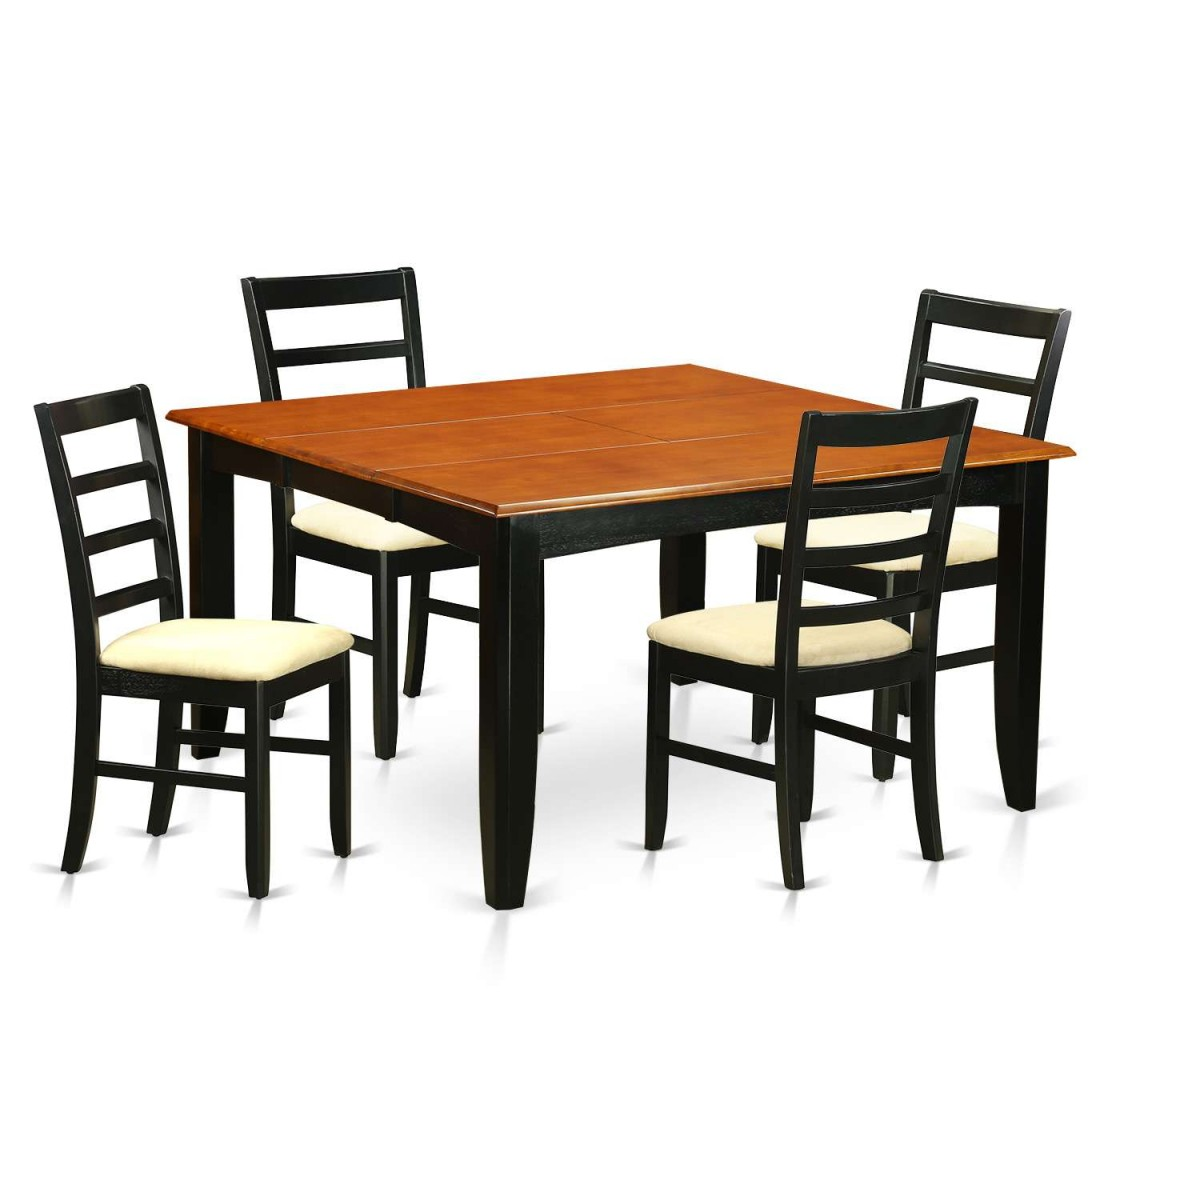 East West Furniture Parfait 5 Piece Dining Table Set